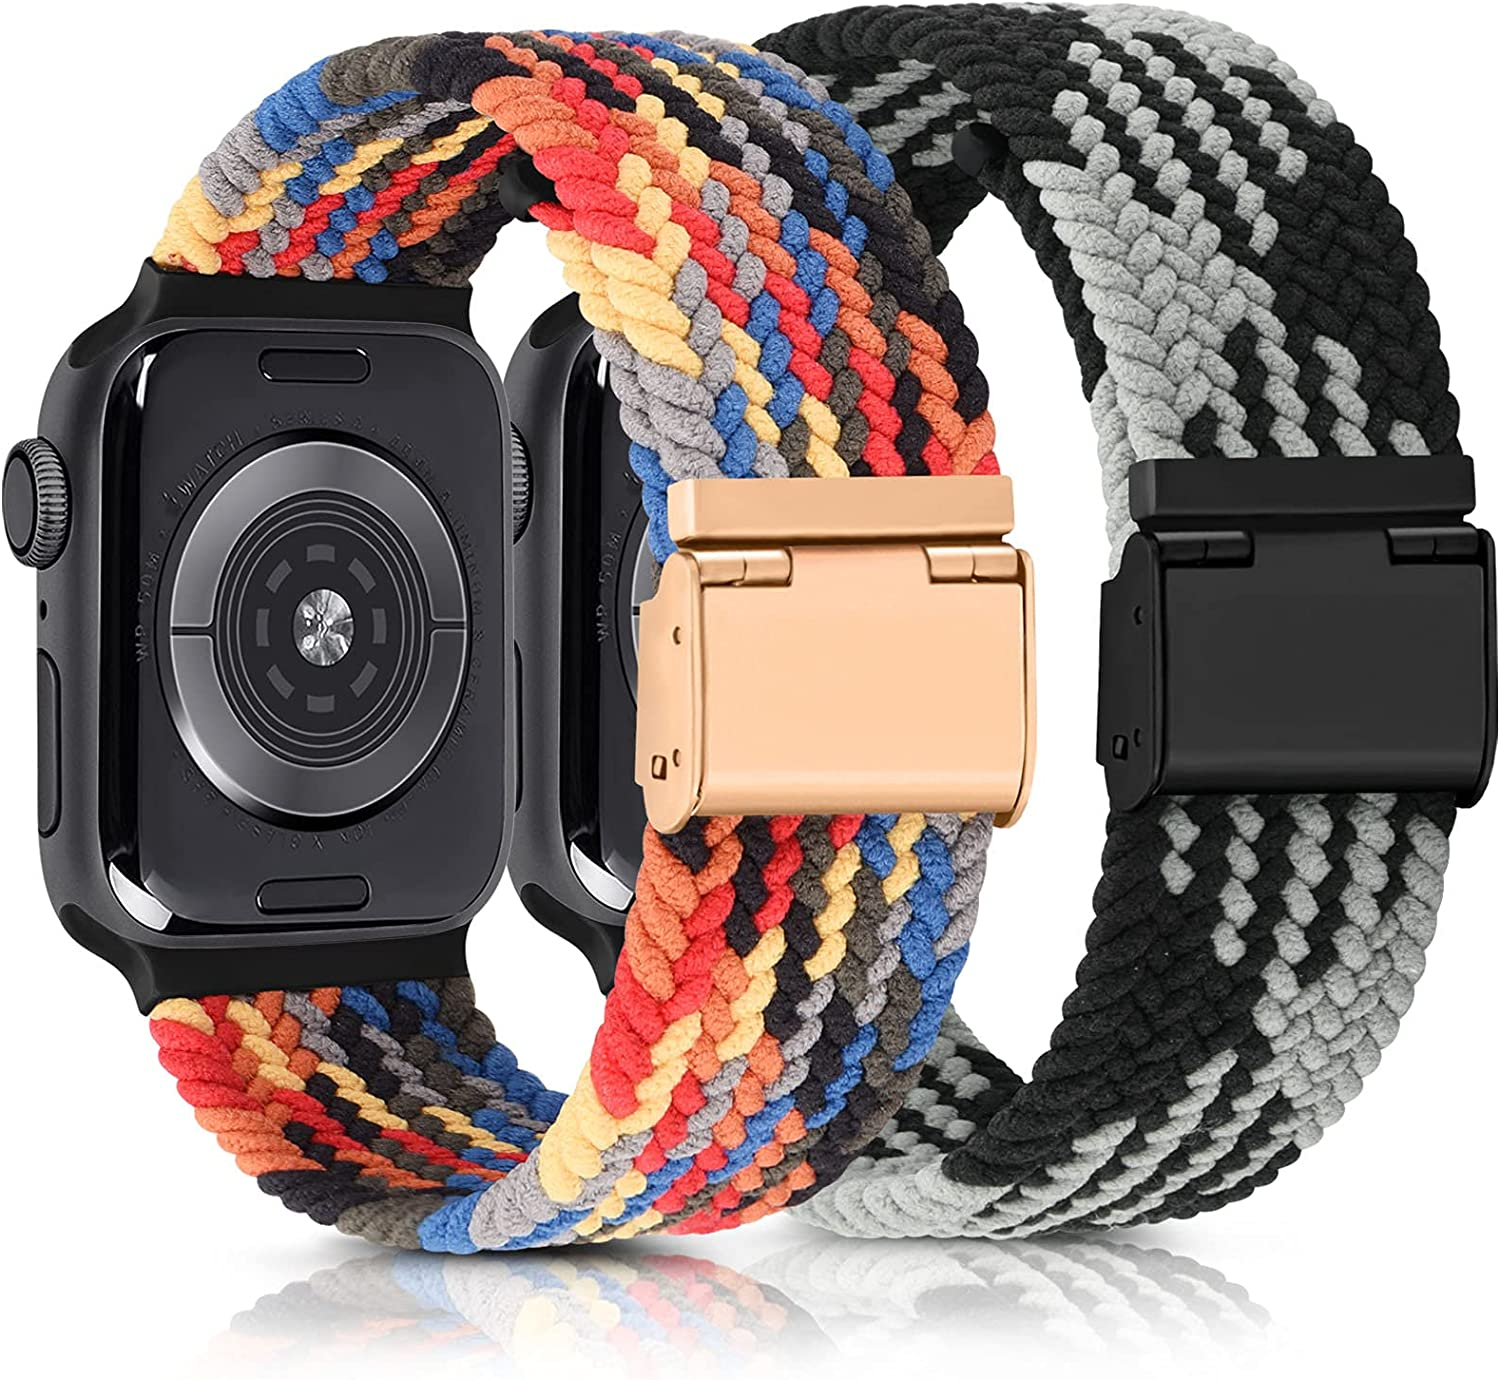 [2 PACK] Stretchy Bands Compatible with Apple Watch Bands 44mm 42mm 40mm 38mm for Women Men, Adjustable Braided Solo Loop Wristband for iWatch SE & Series 6 5 4 3 2 1